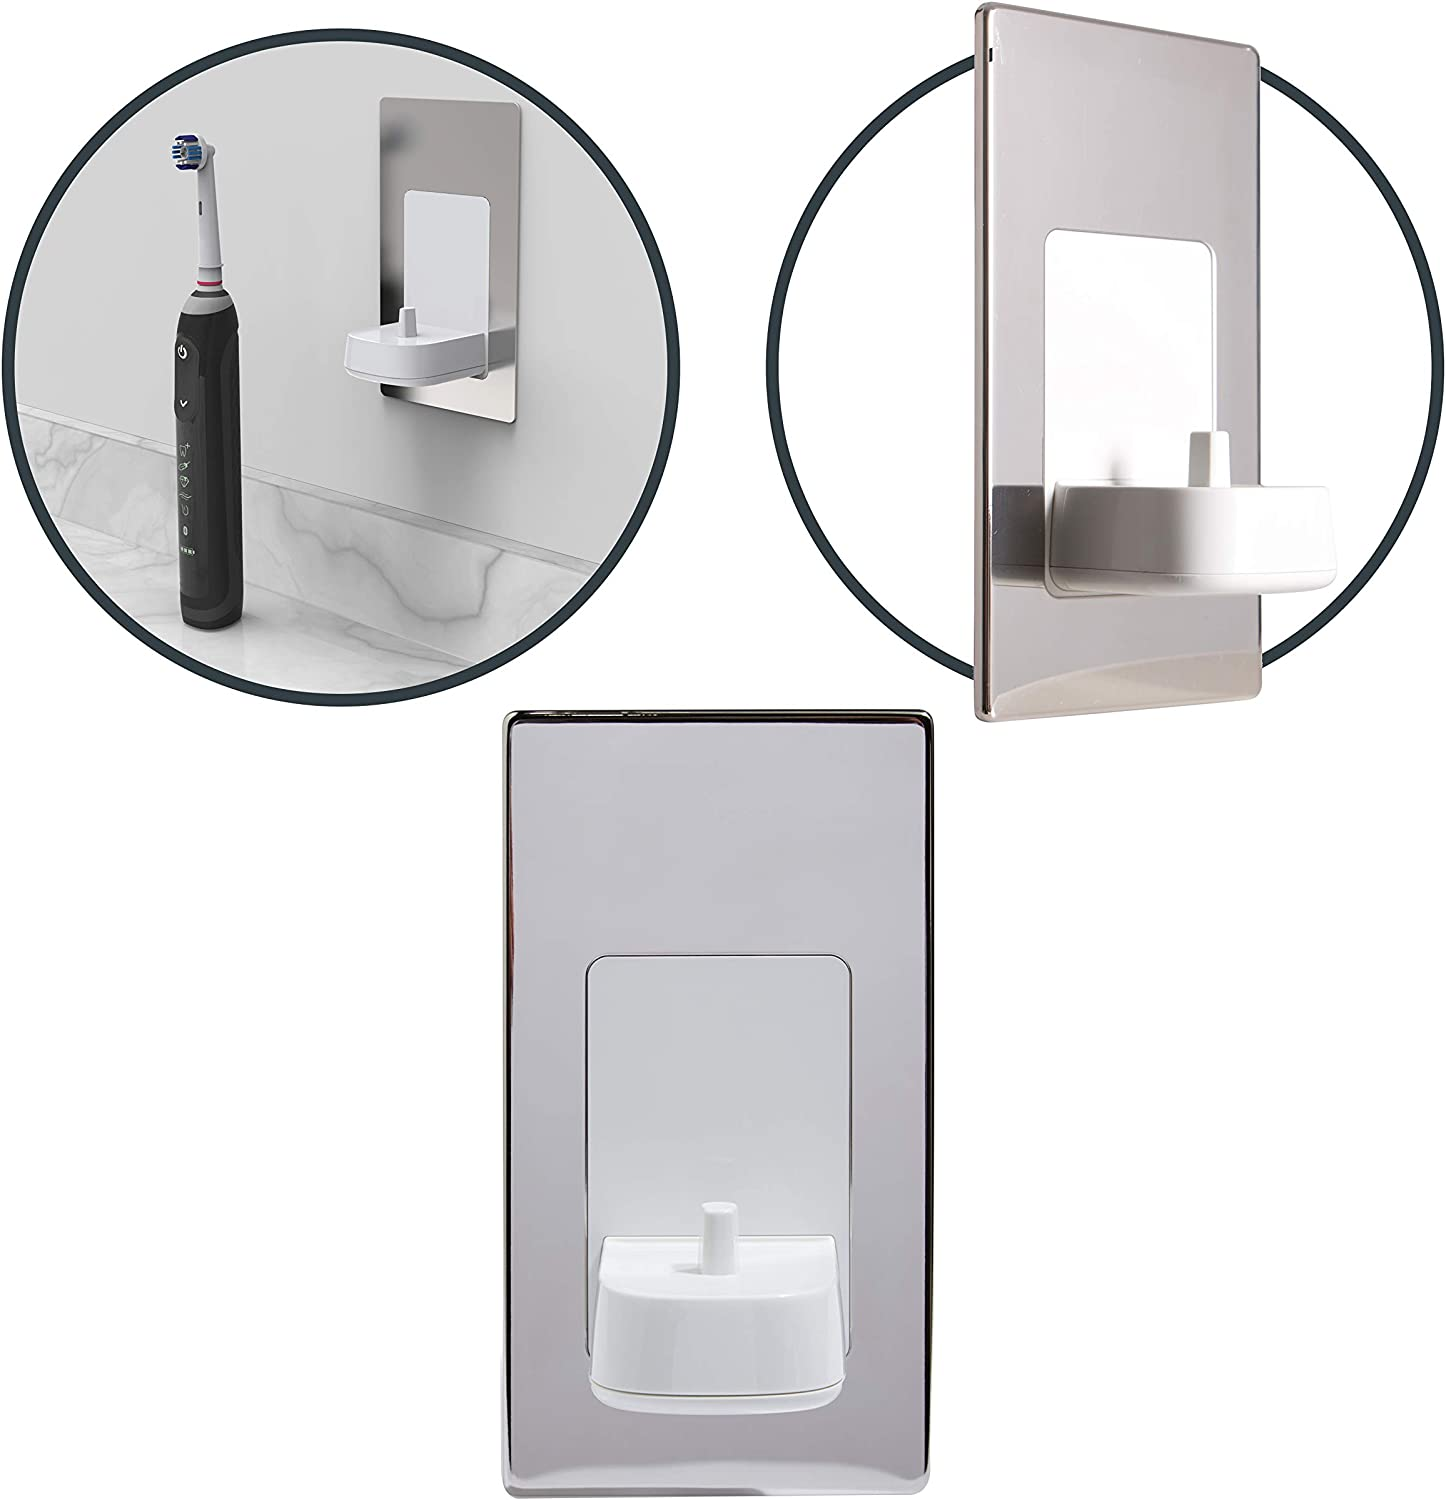 ProofVision in Wall Electric Toothbrush Charger: Amazon.co